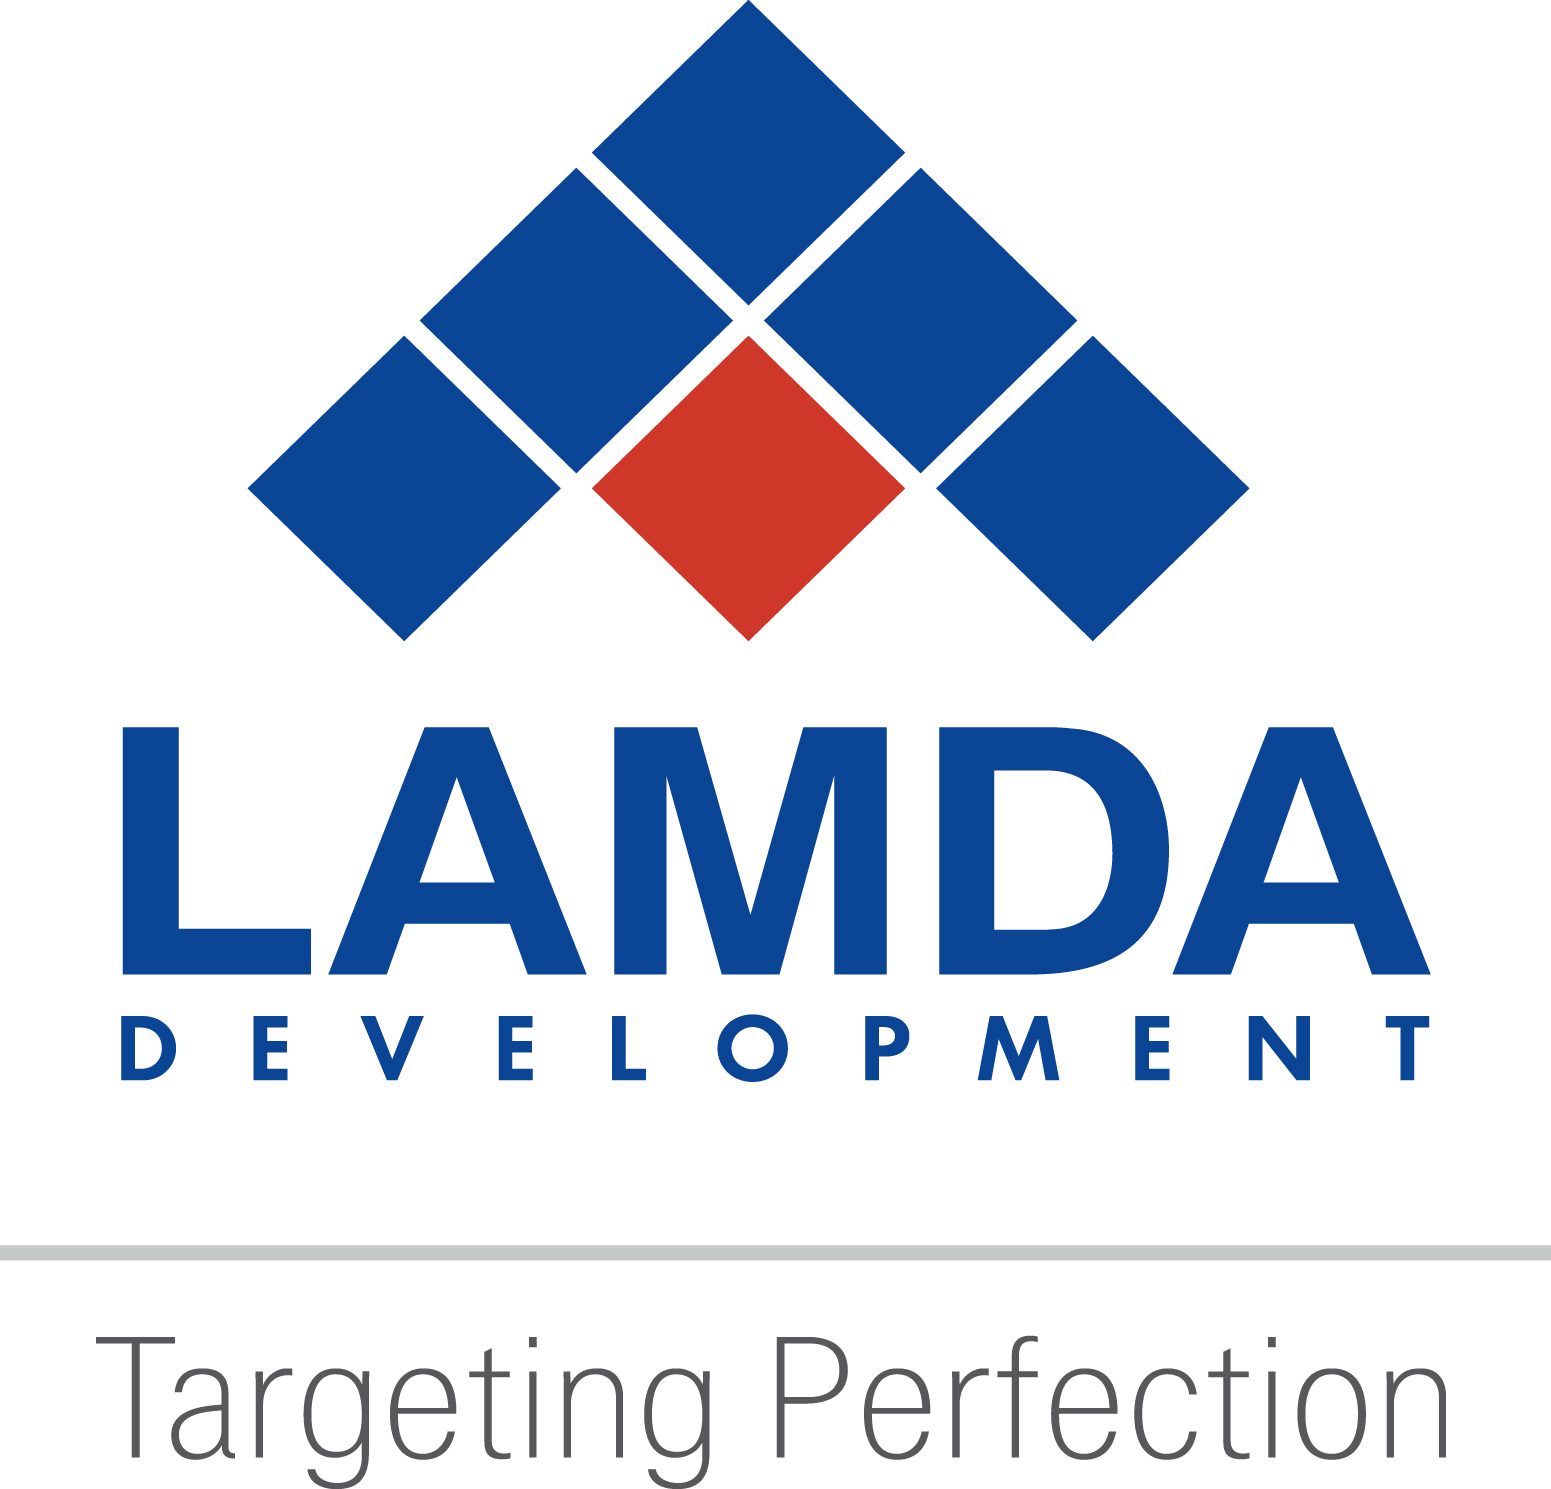 LAMDA DEVELOPMENT LOGO